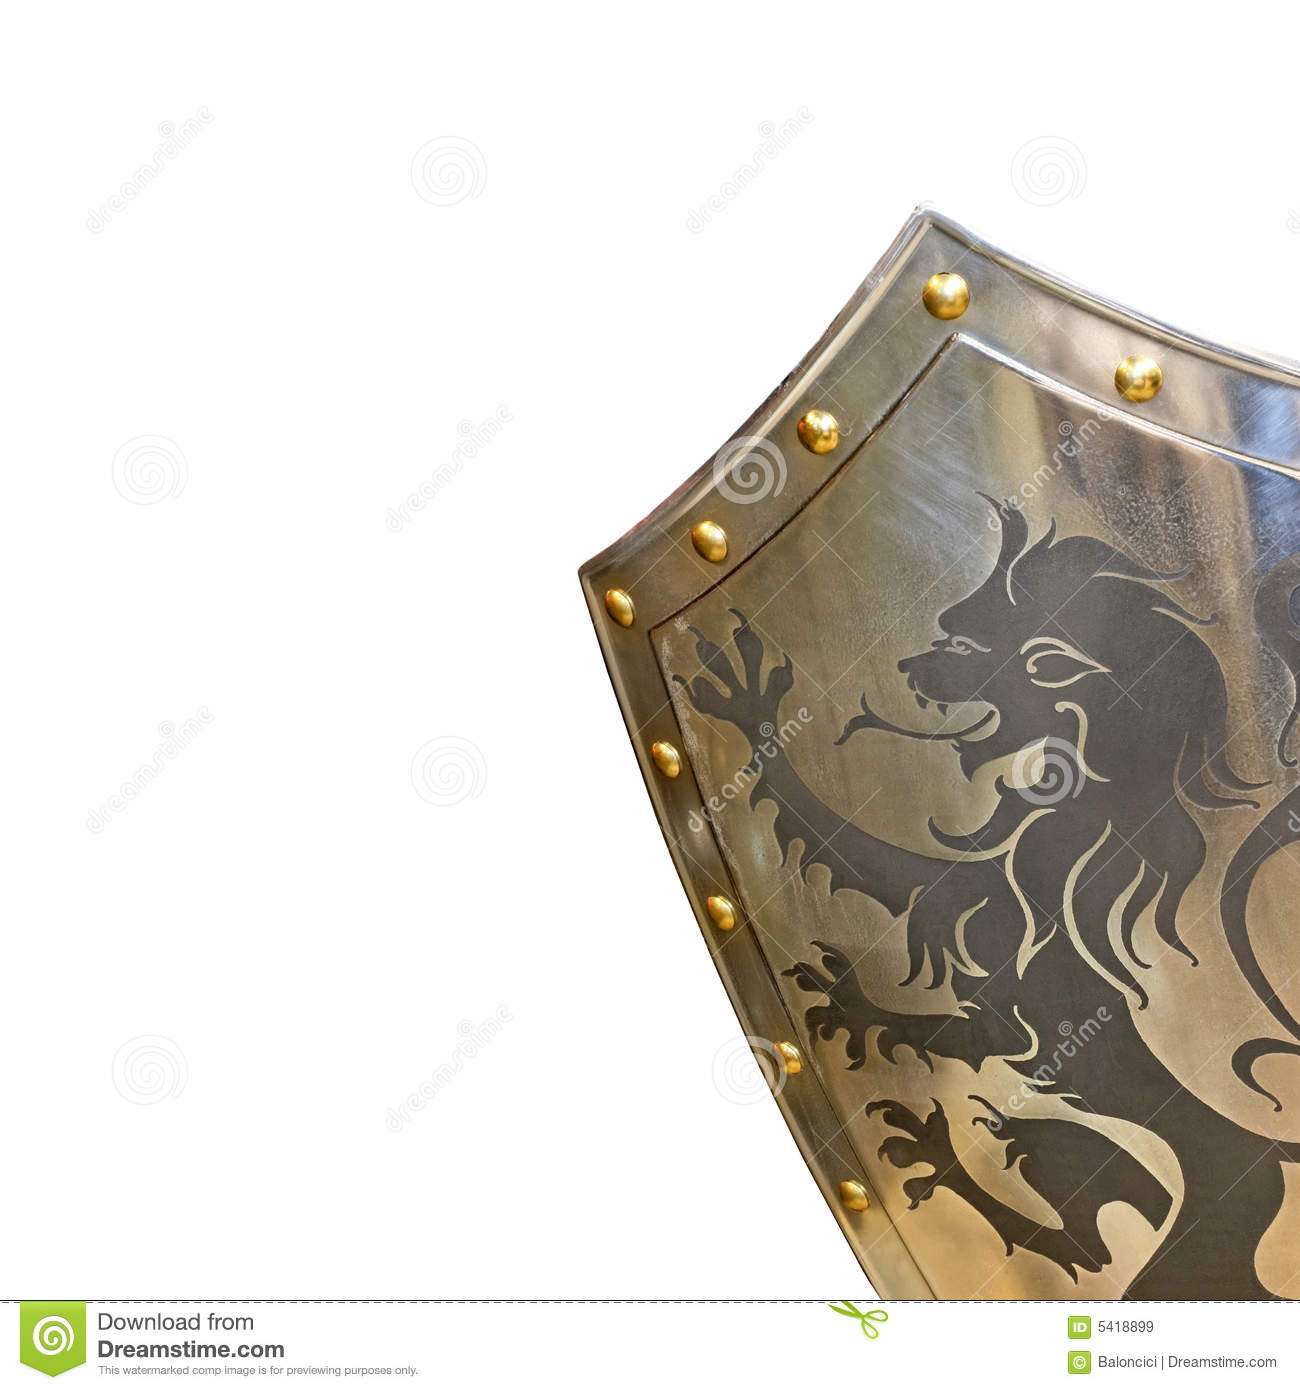 armor shield royalty free stock images image 5418899